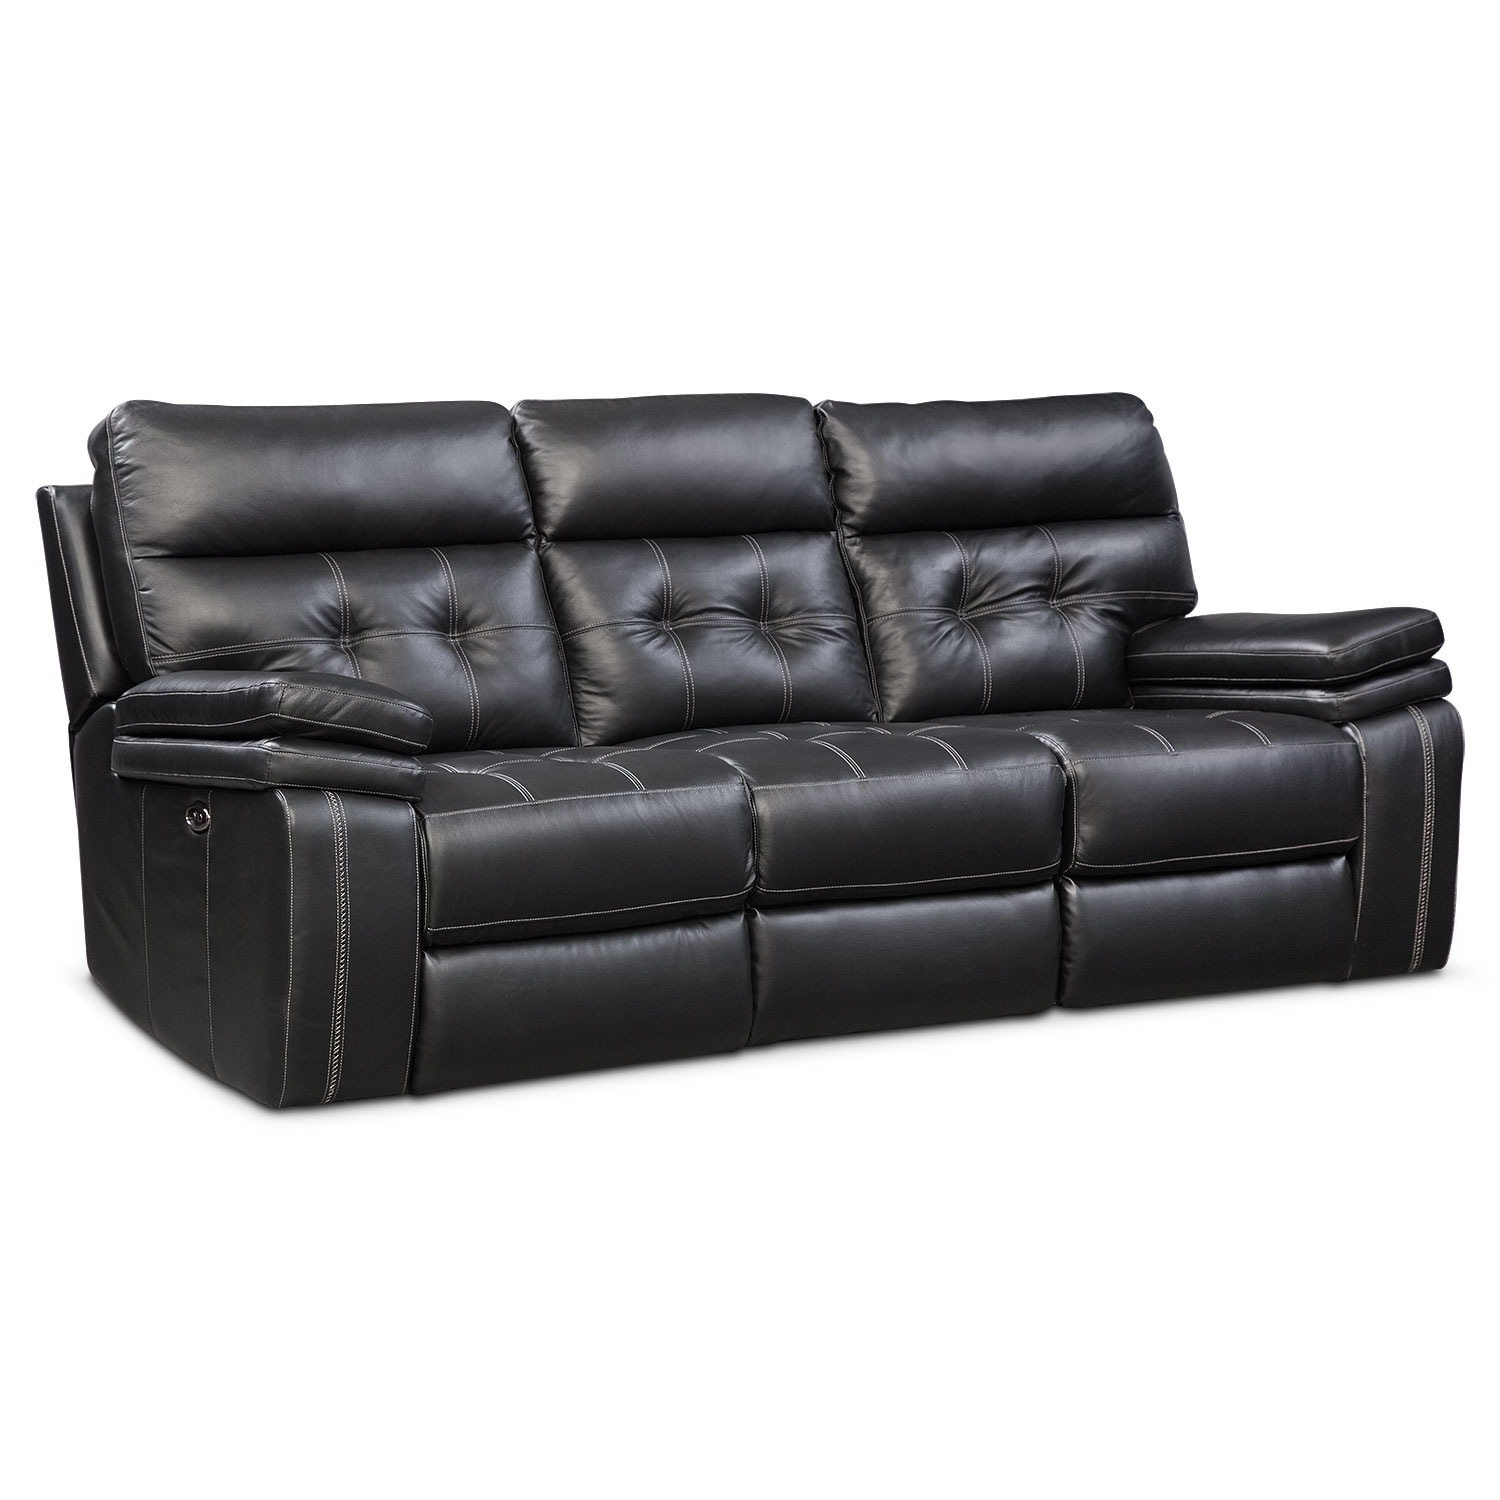 Brisco Power Reclining Sofa Reclining Loveseat And Glider